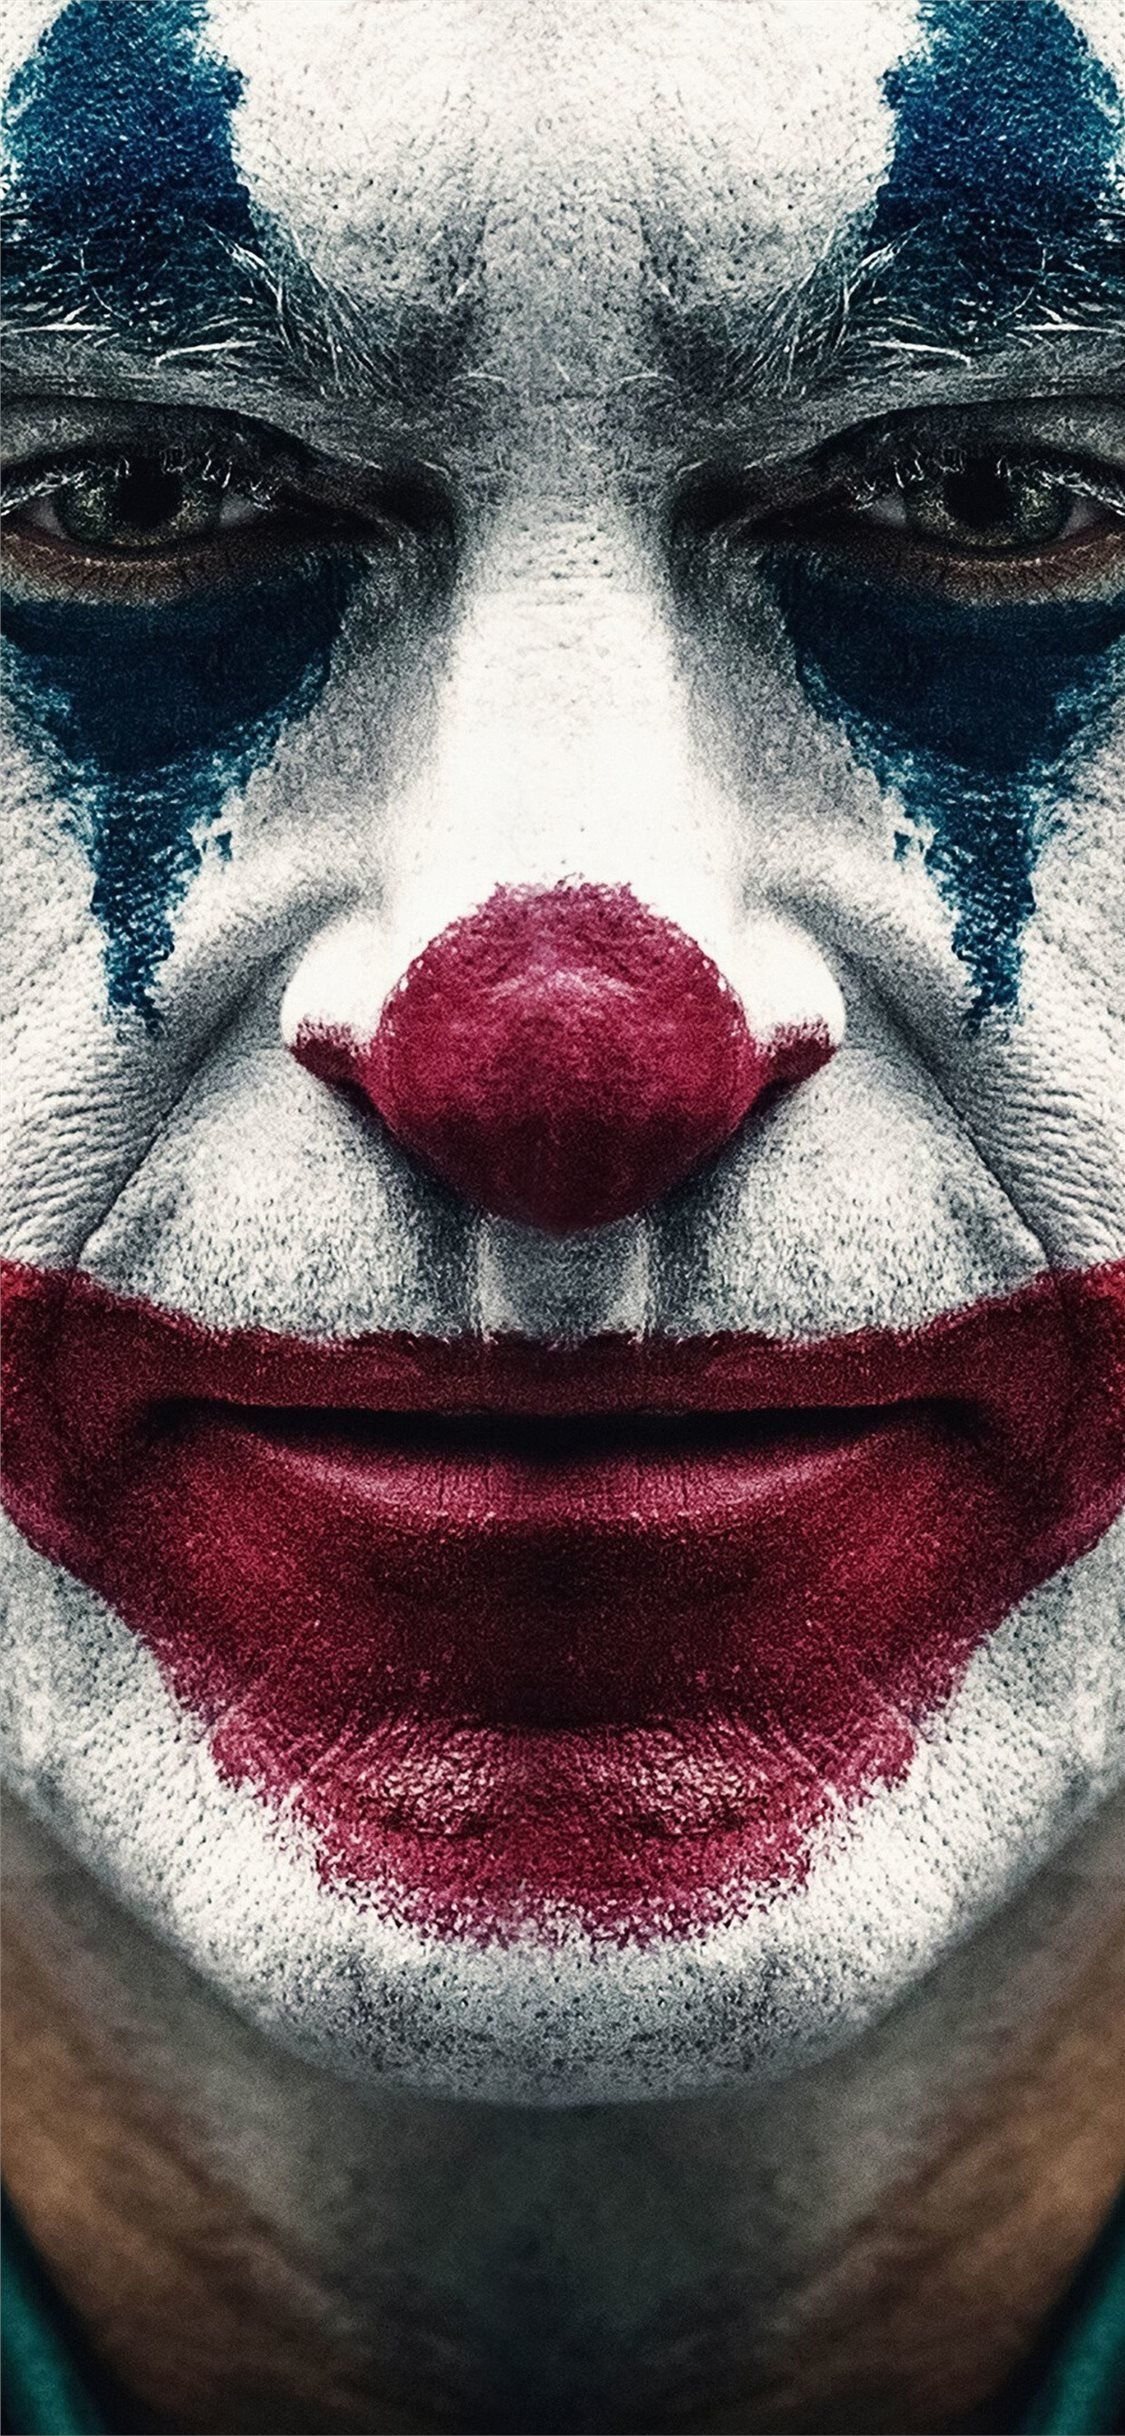 Free Download The Joker 2019 Joaquin Phoenix Clown Wallpaper